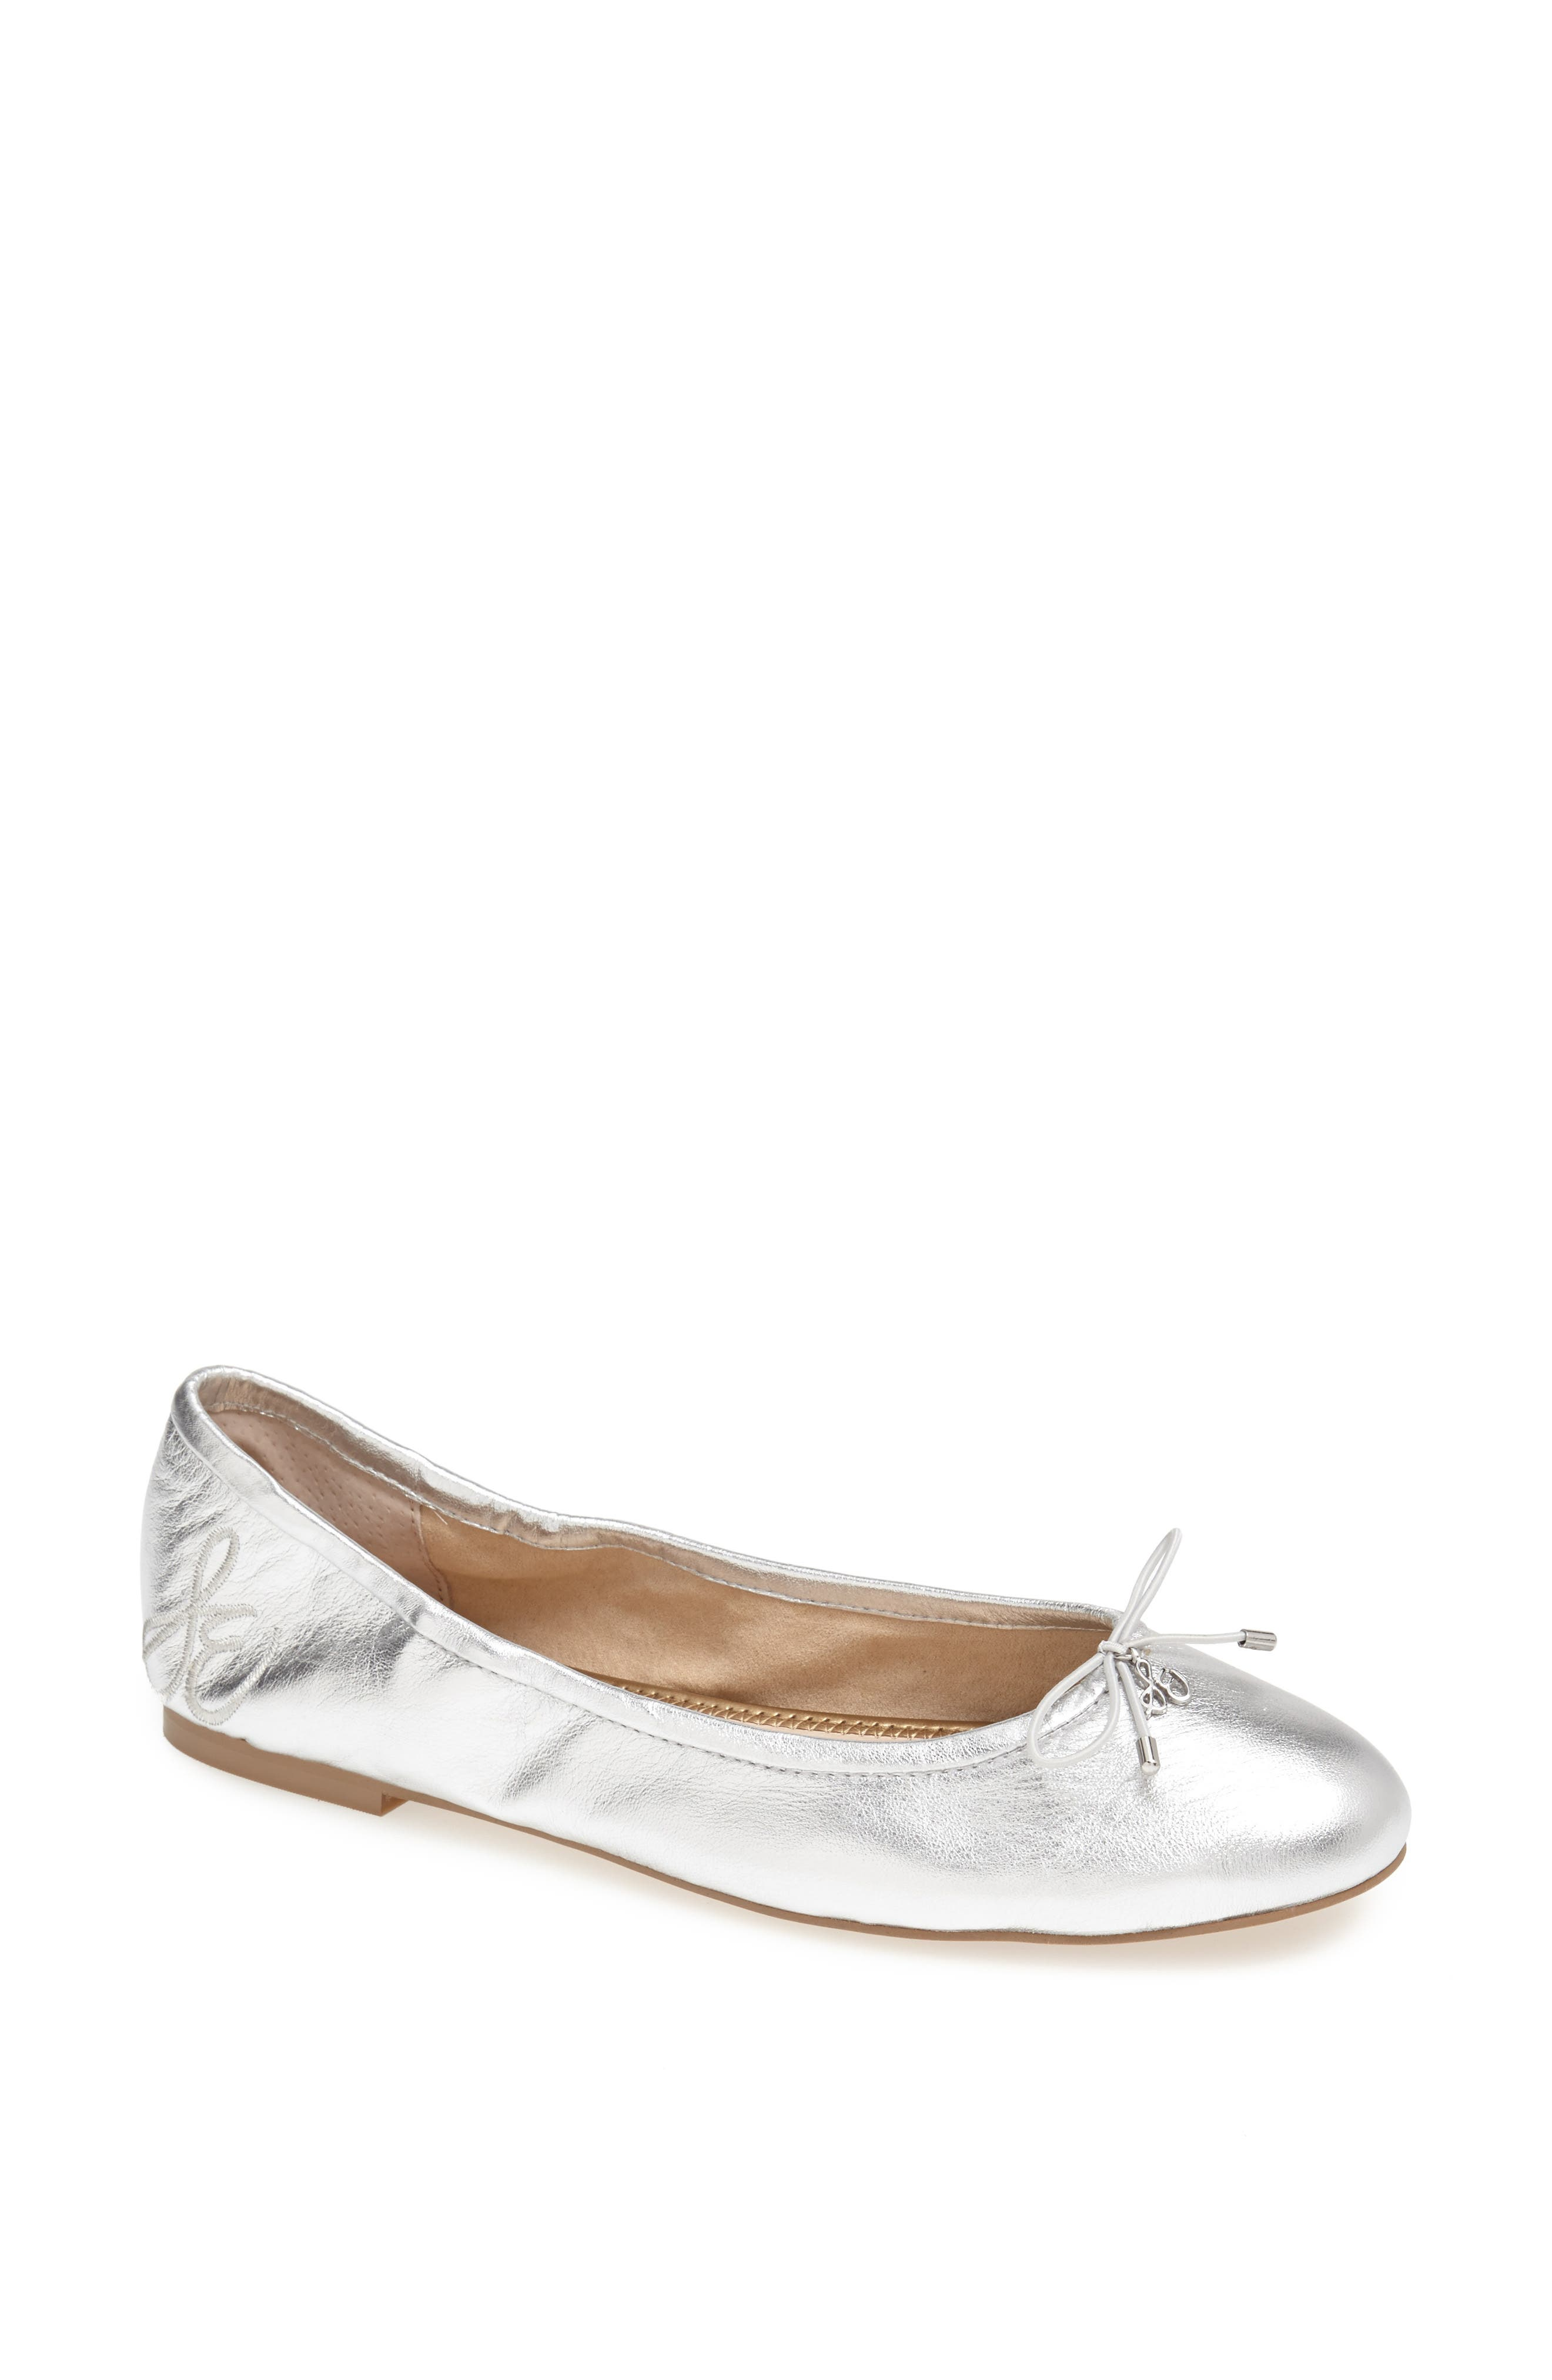 Image of Sam Edelman Felicia Ballet Flat - Wide Width Available